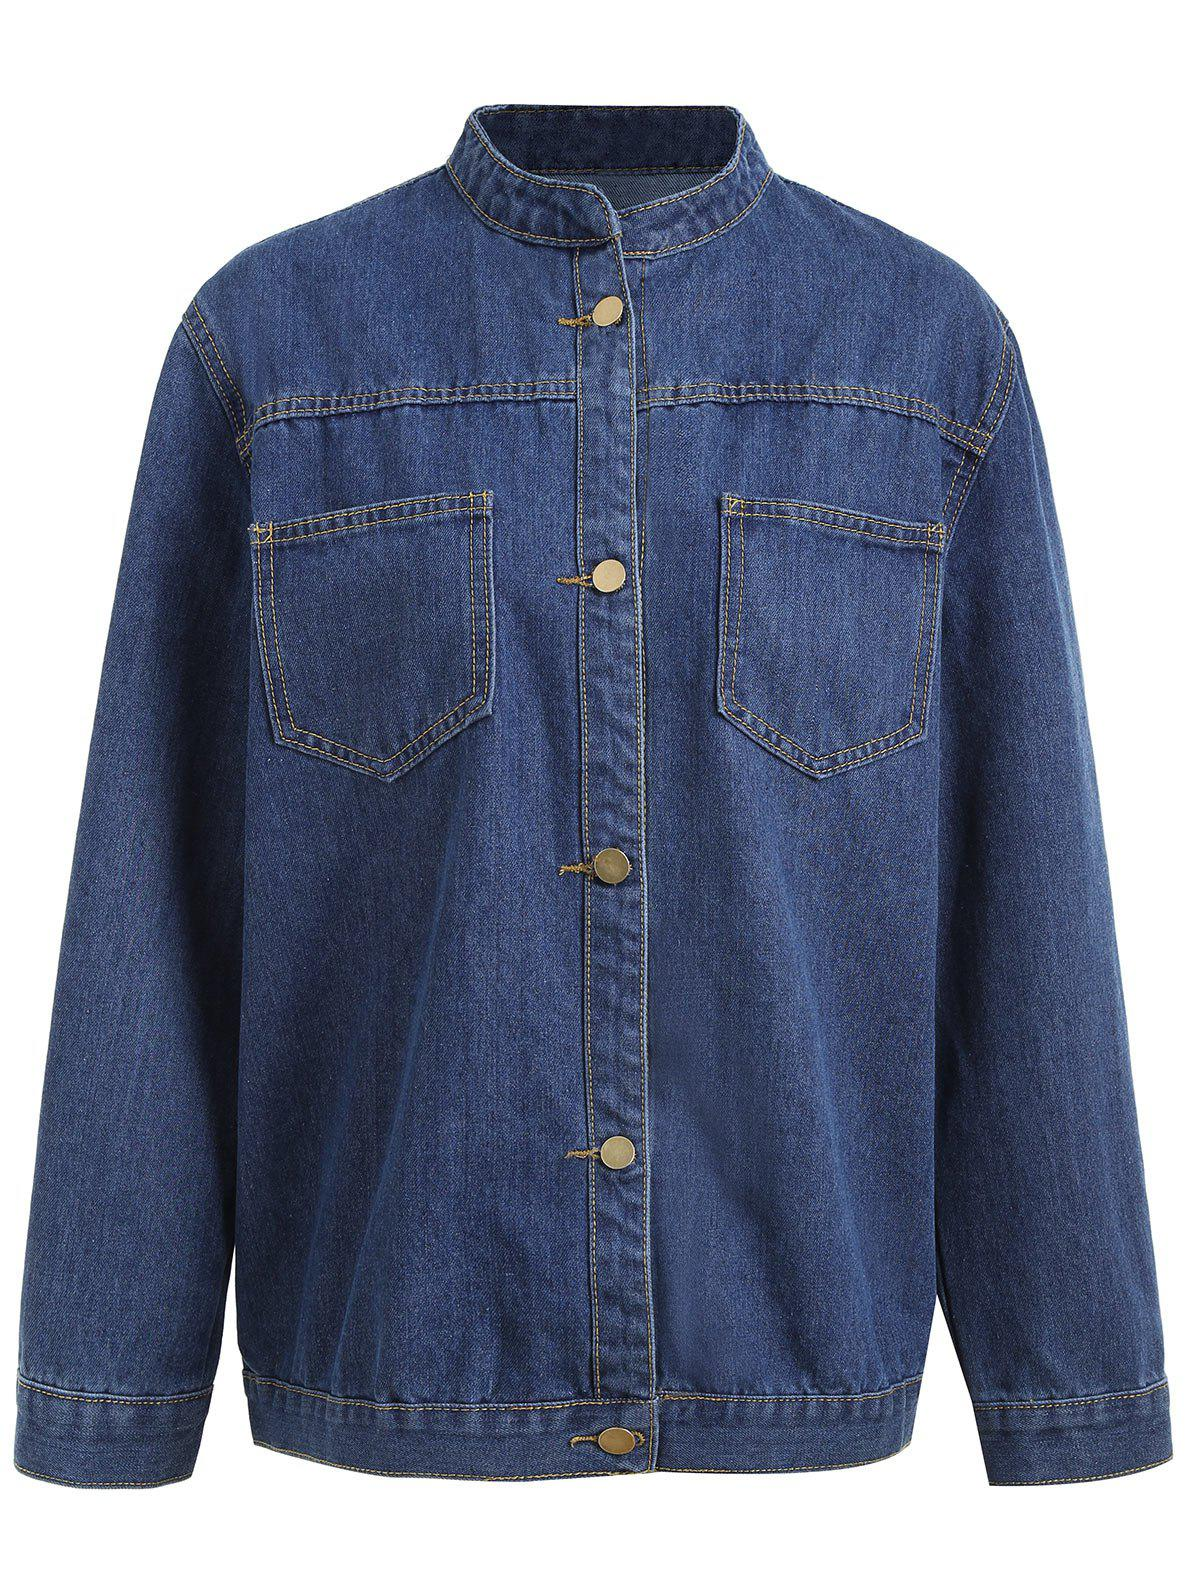 New Plus Size Button Up Pocket Denim Jacket